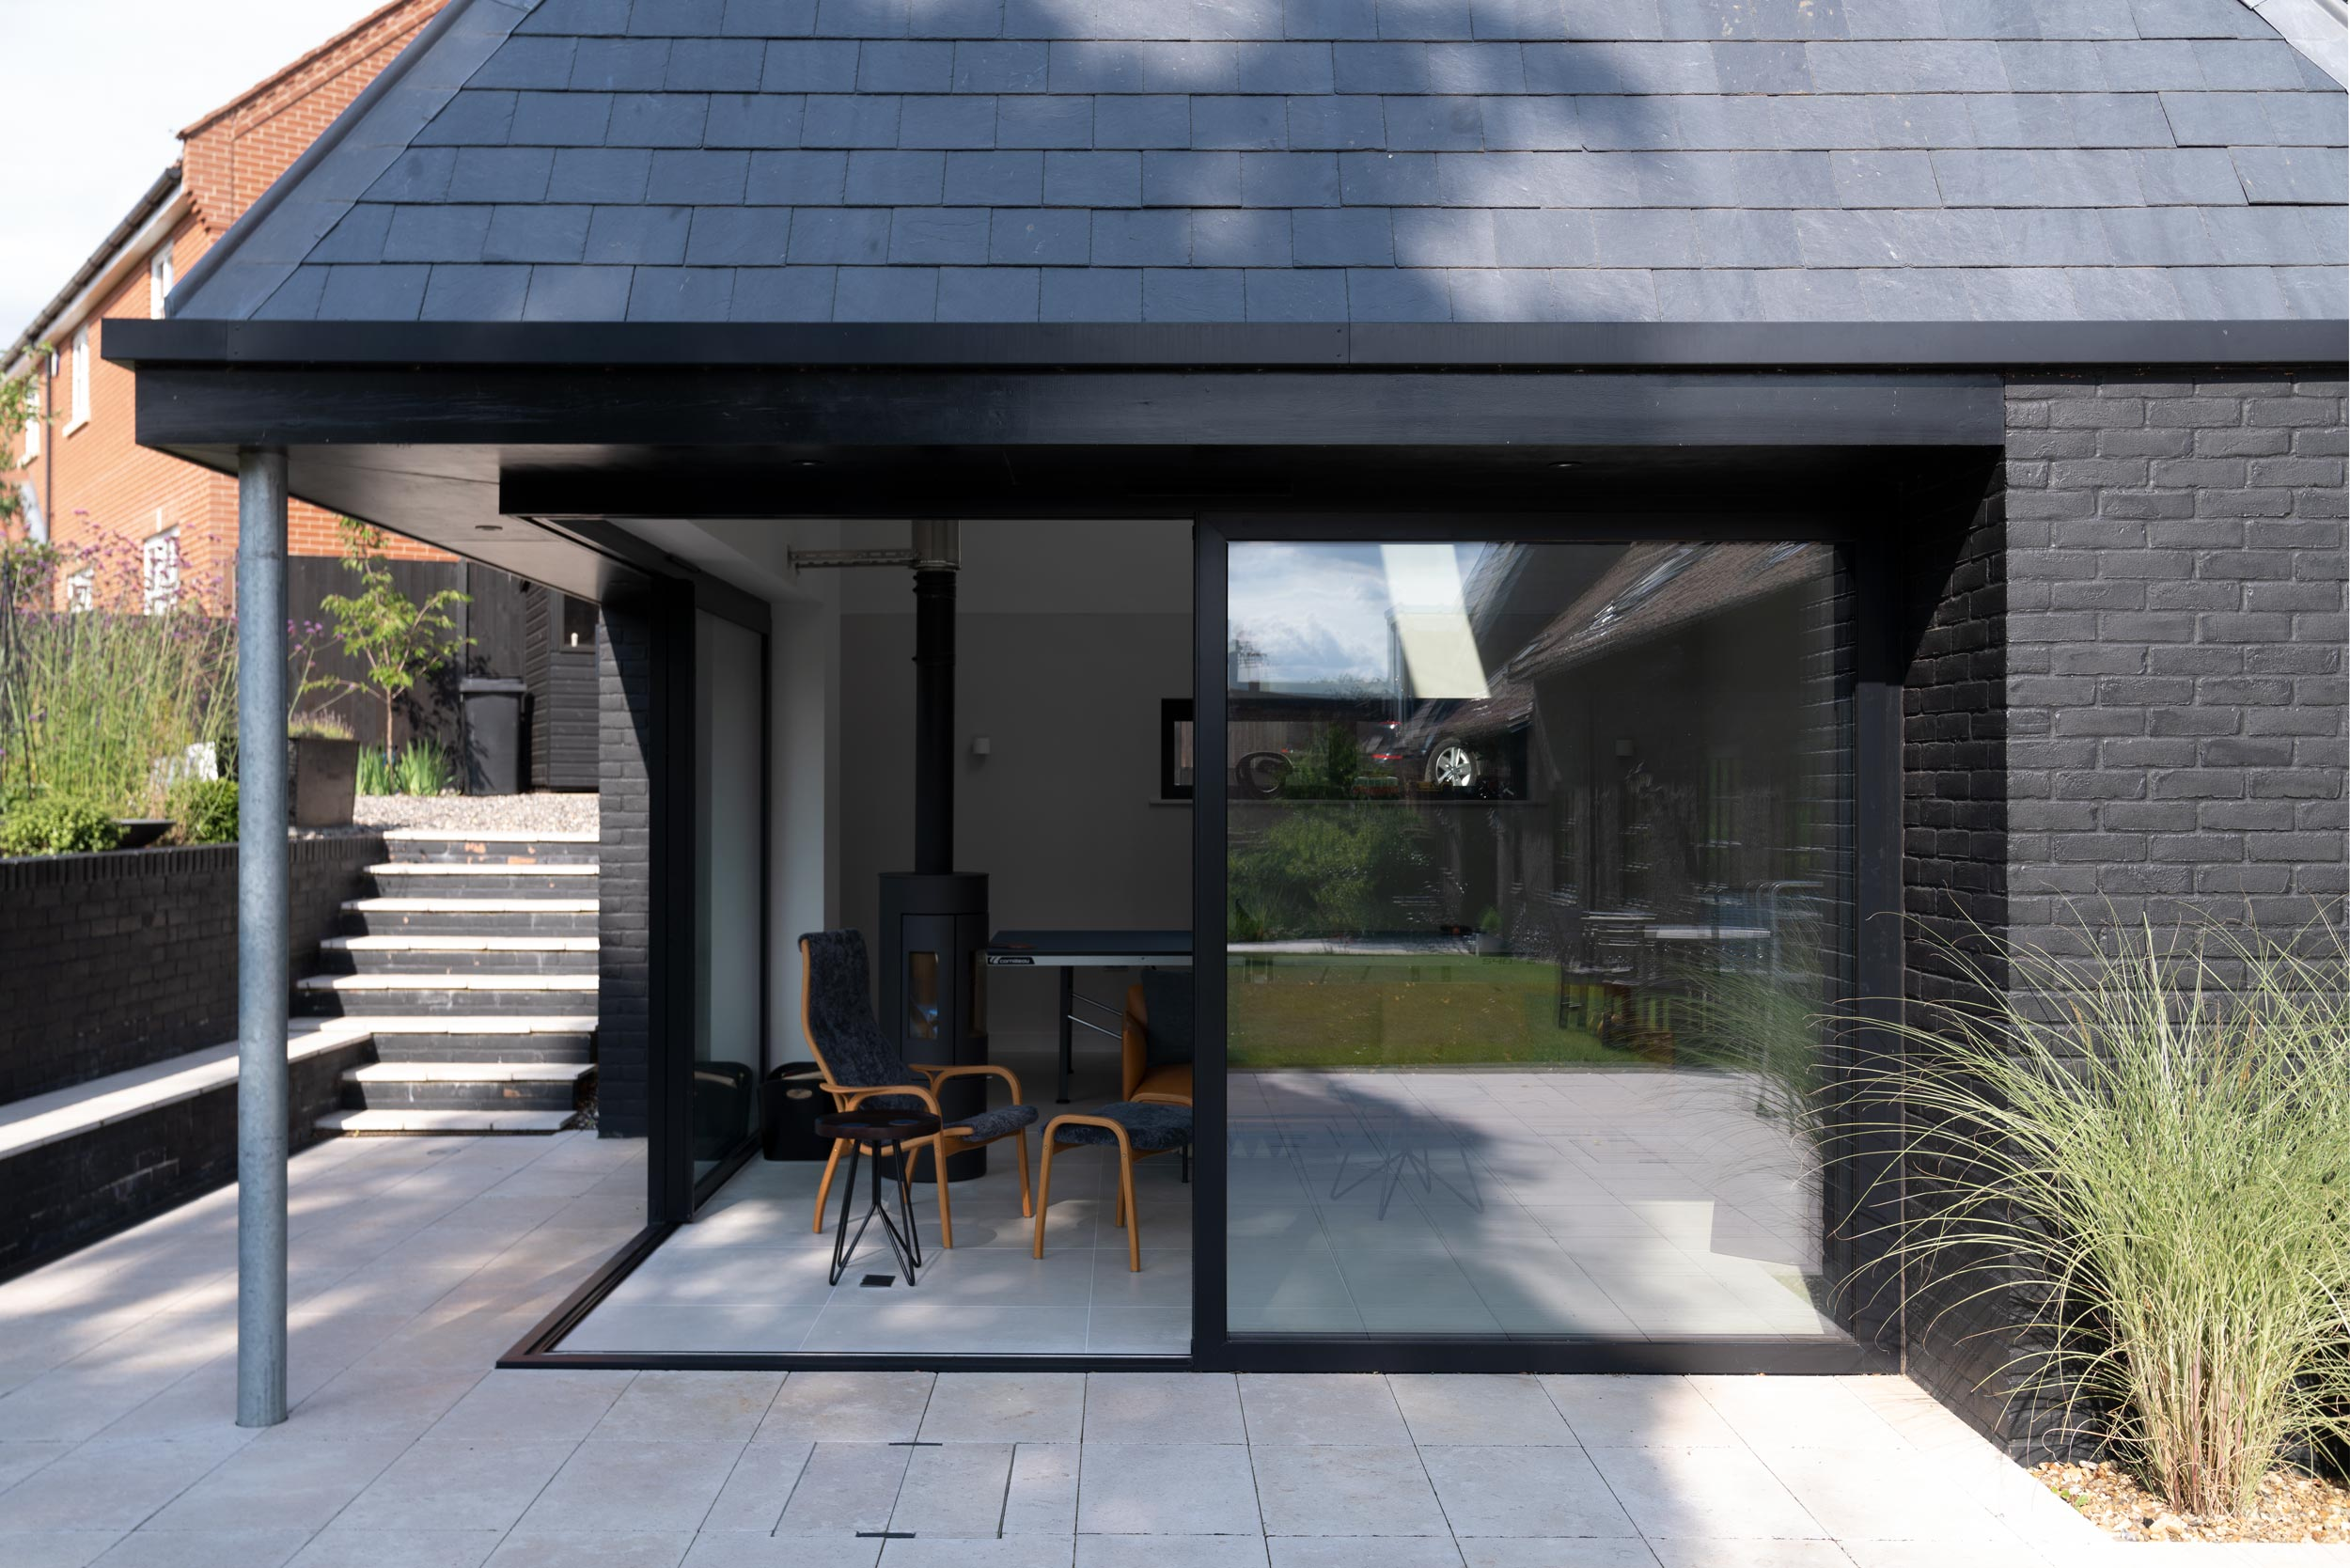 Fiona-Burrage-Lucas-And-Western-Architects-Wymondham-Interiors-Photographer-Norwich-Extension.jpg